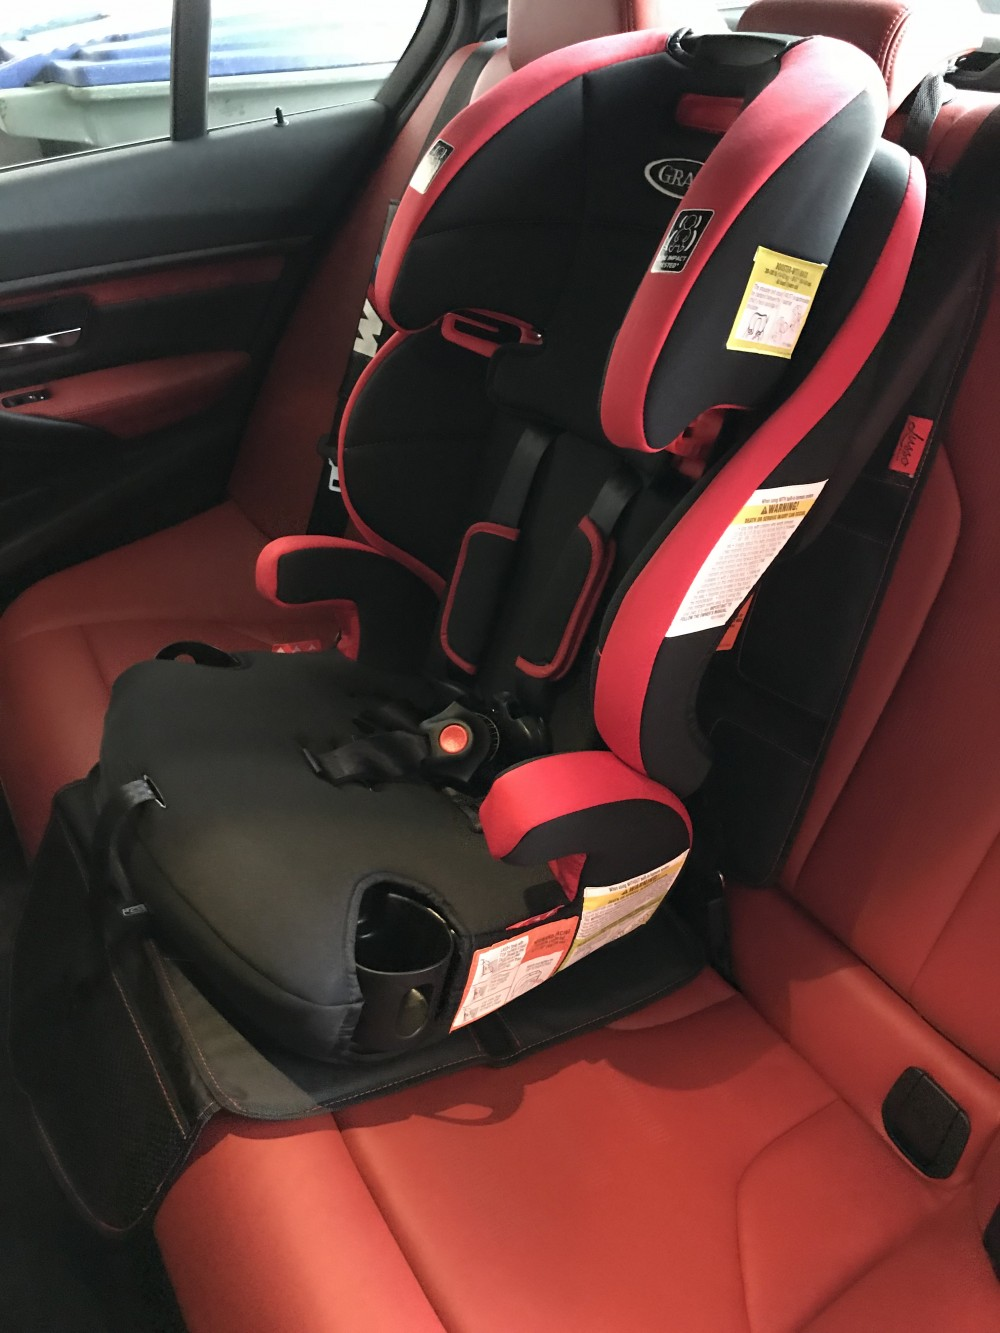 The Official Baby/Infant/Child Car Seat Pictures Thread - Page 7